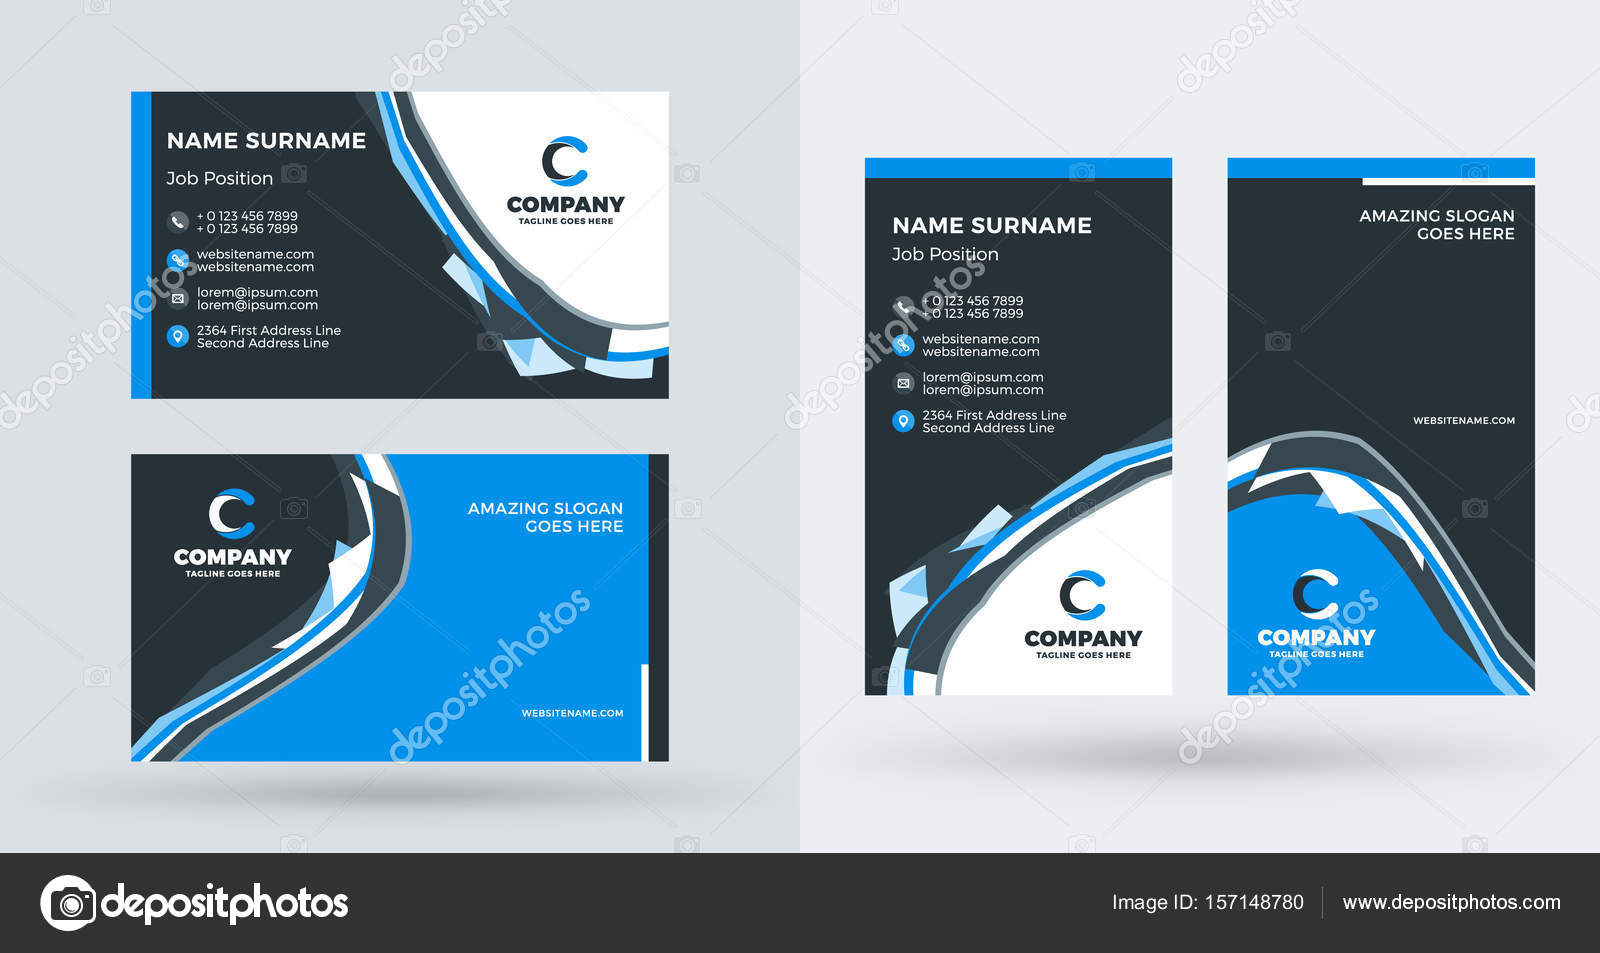 Double sided creative business card template portrait and landscape double sided creative business card template portrait and landscape orientation horizontal and vertical accmission Gallery